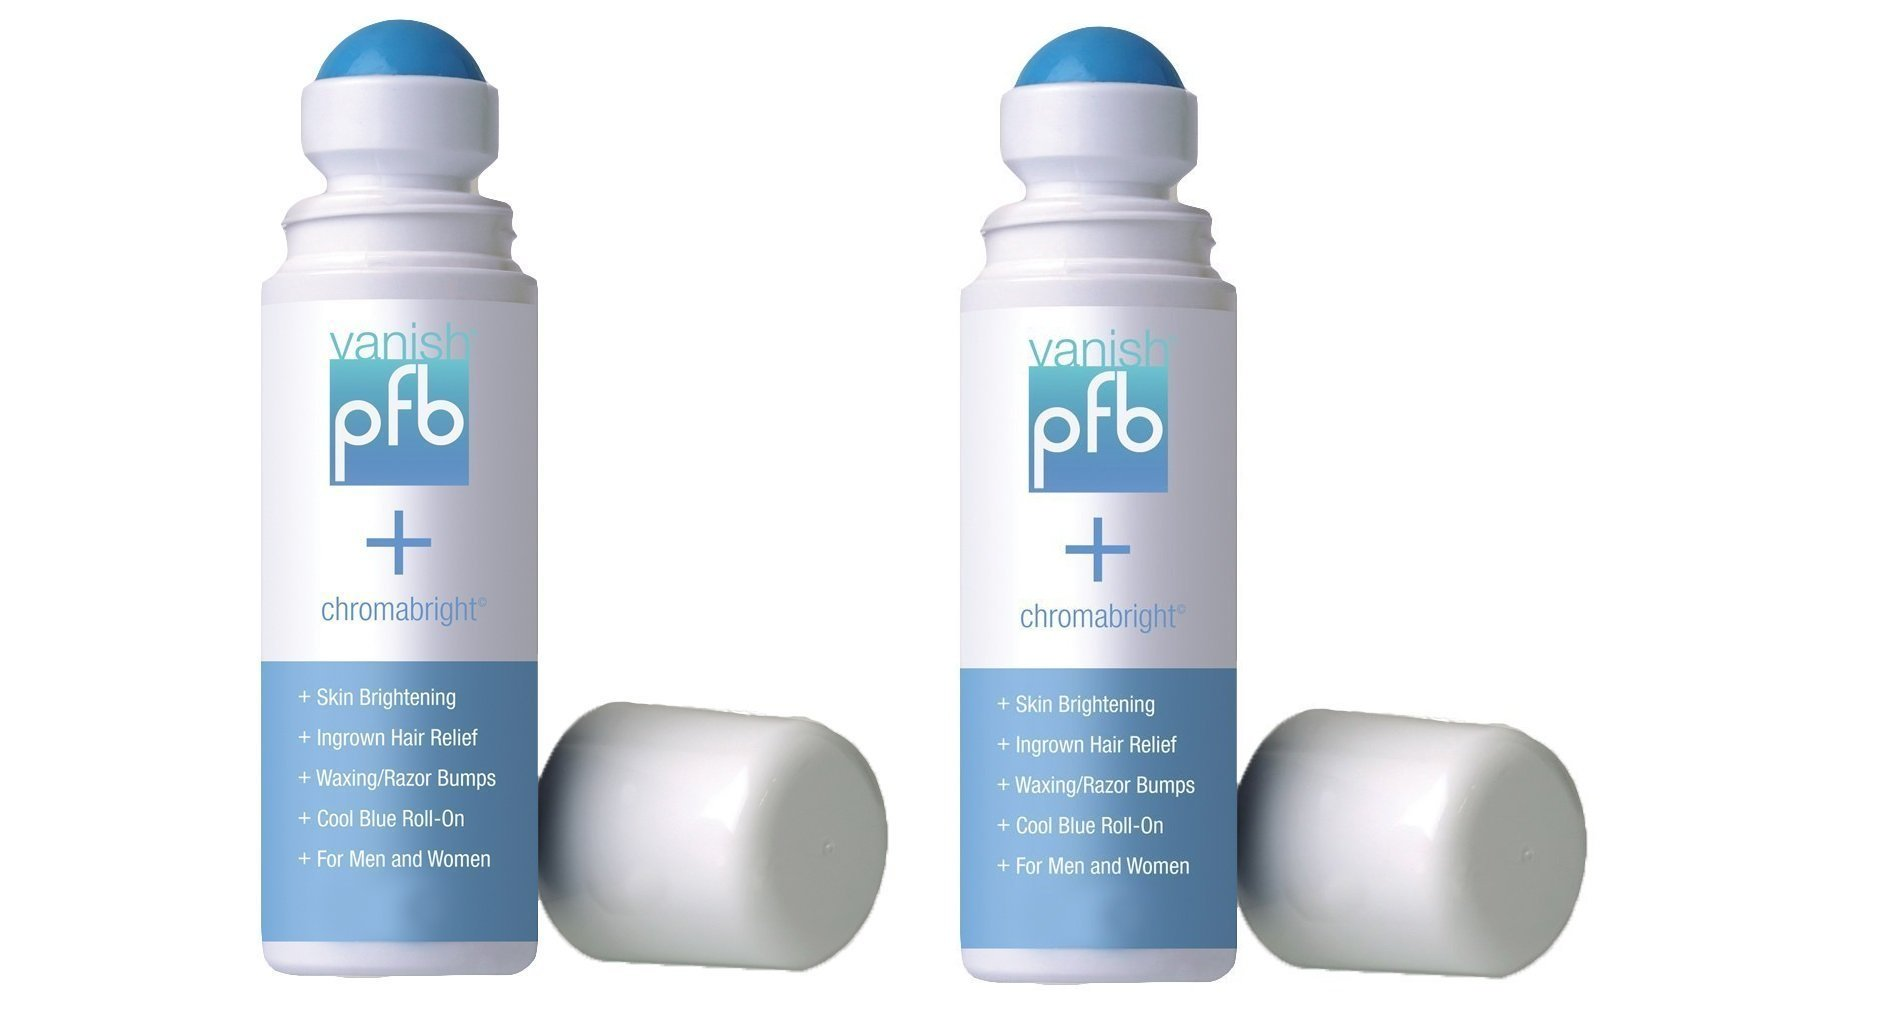 PFB Vanish + Chromabright (2 Pack) by PFB Vanish